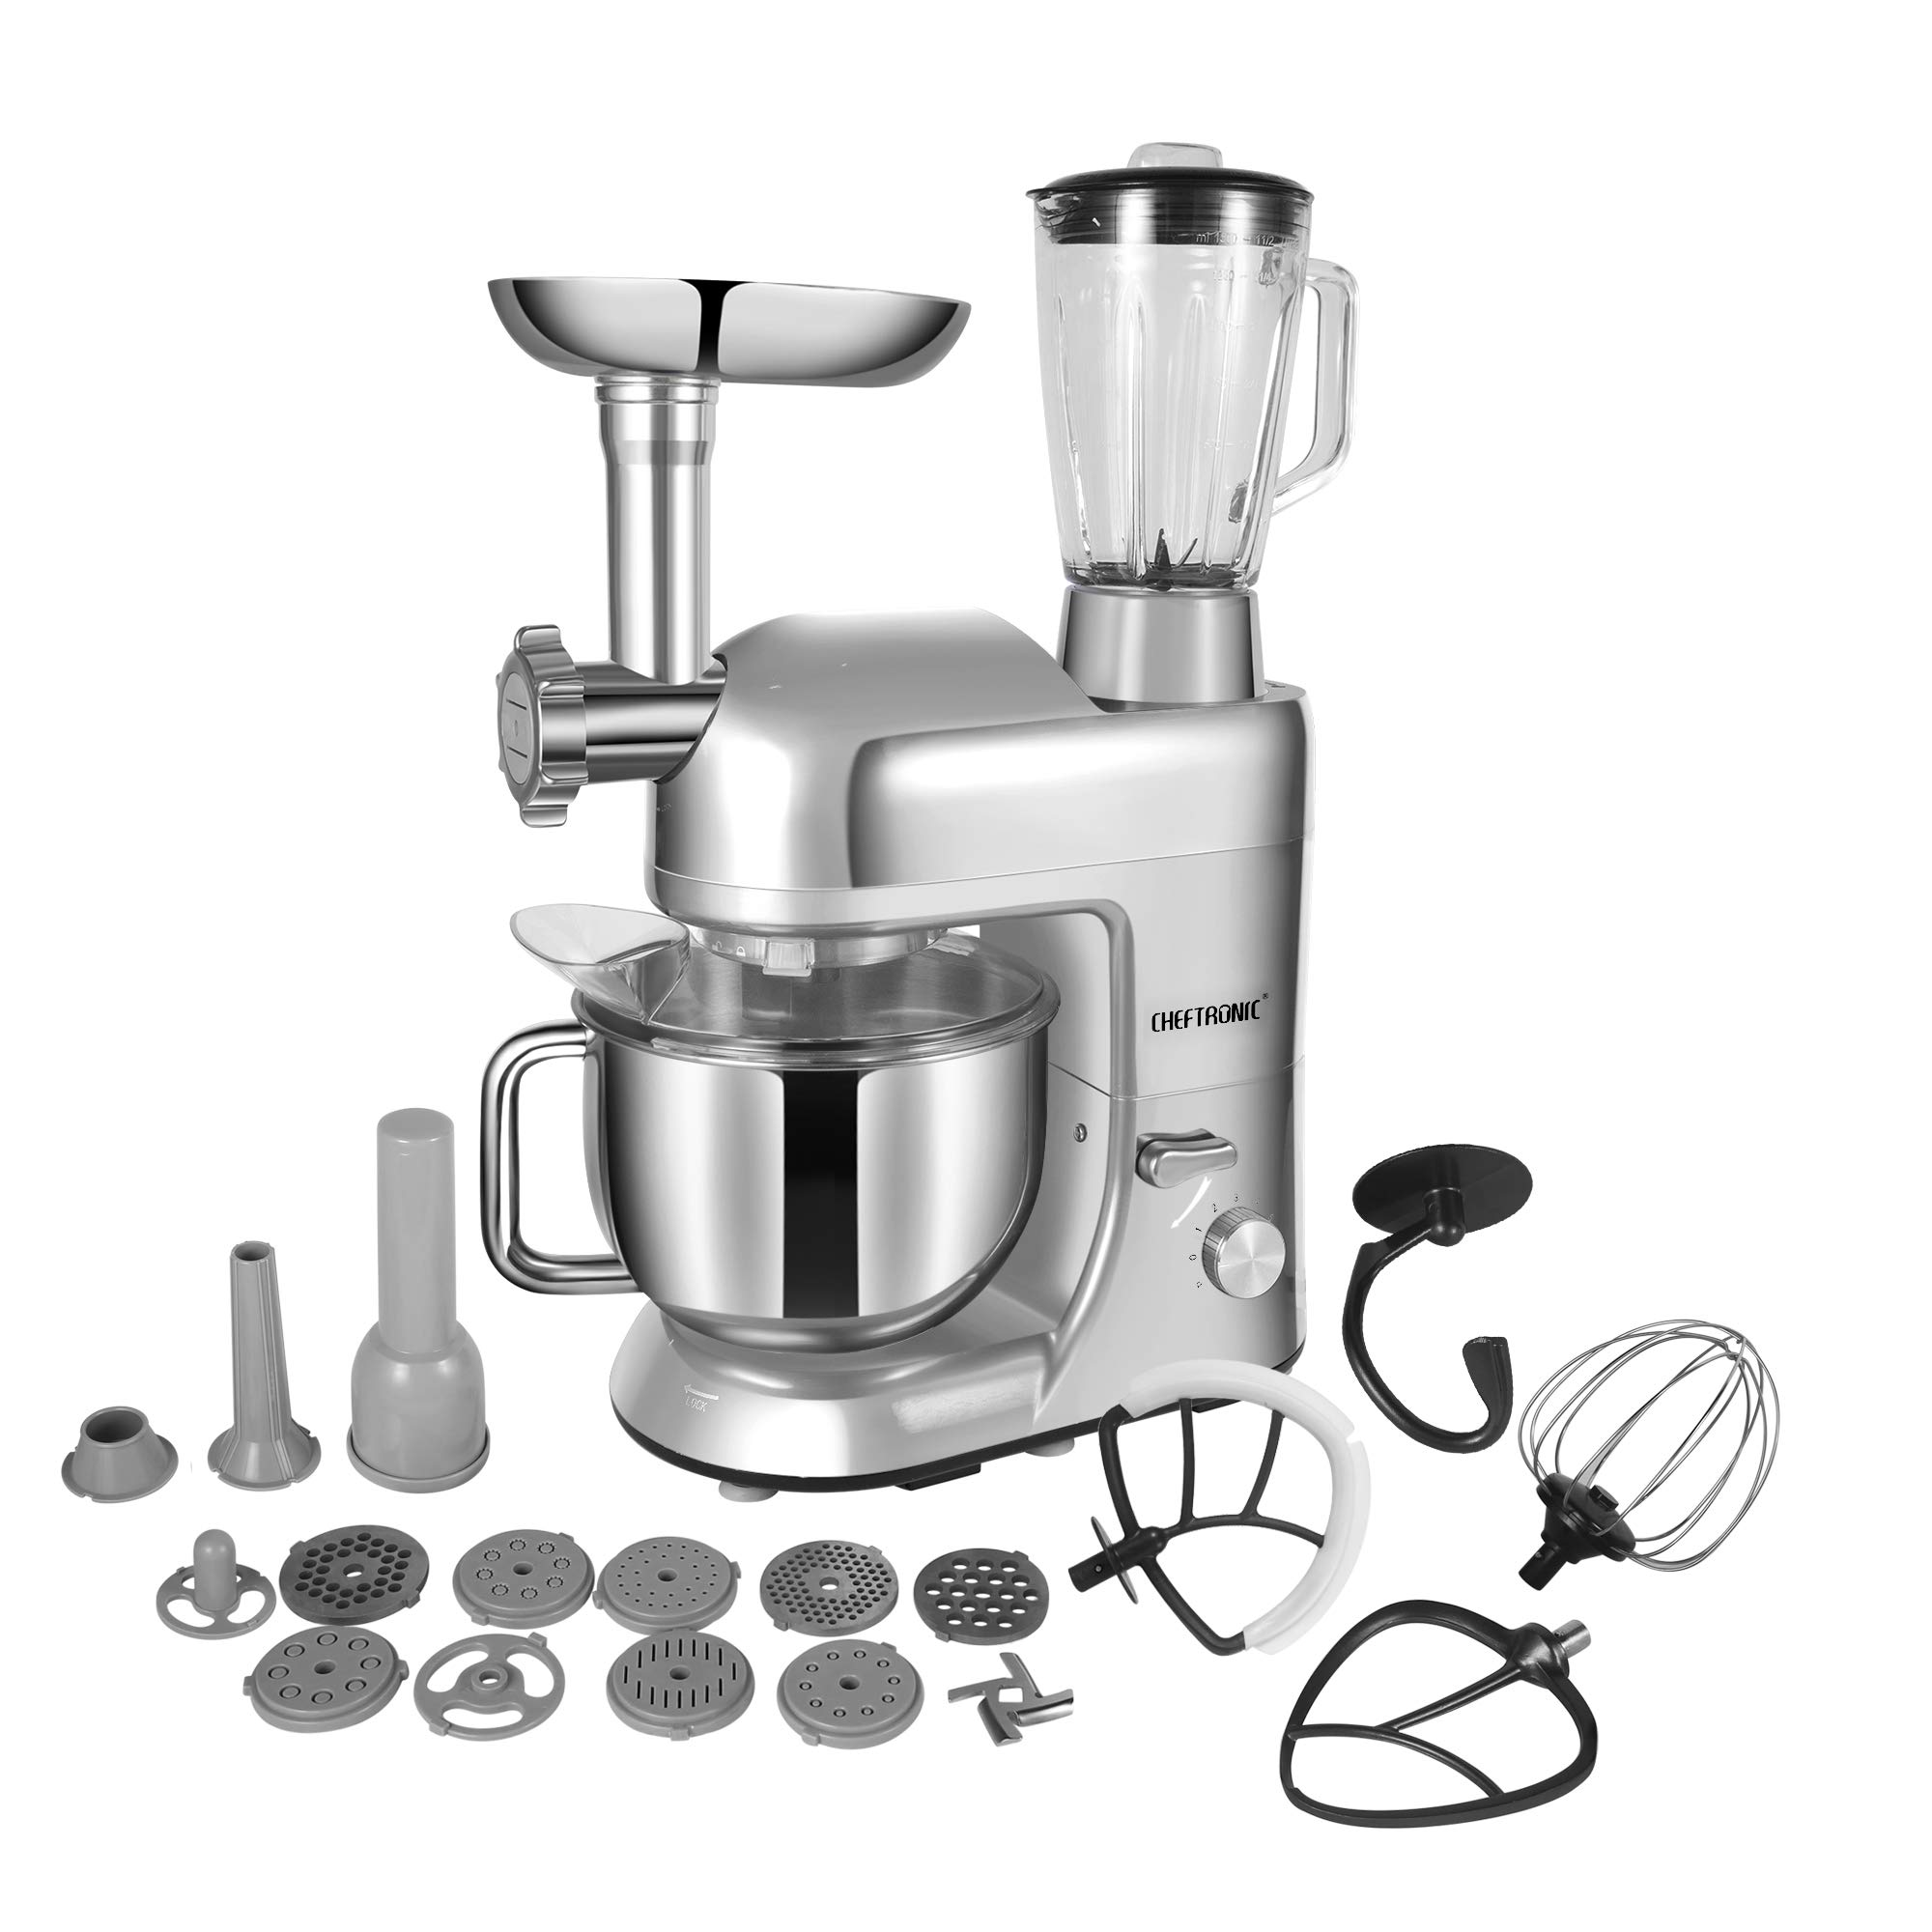 CHEFTRONIC SM1086-Silver Standing Mixer, One Size, Silver by CHEFTRONIC (Image #1)